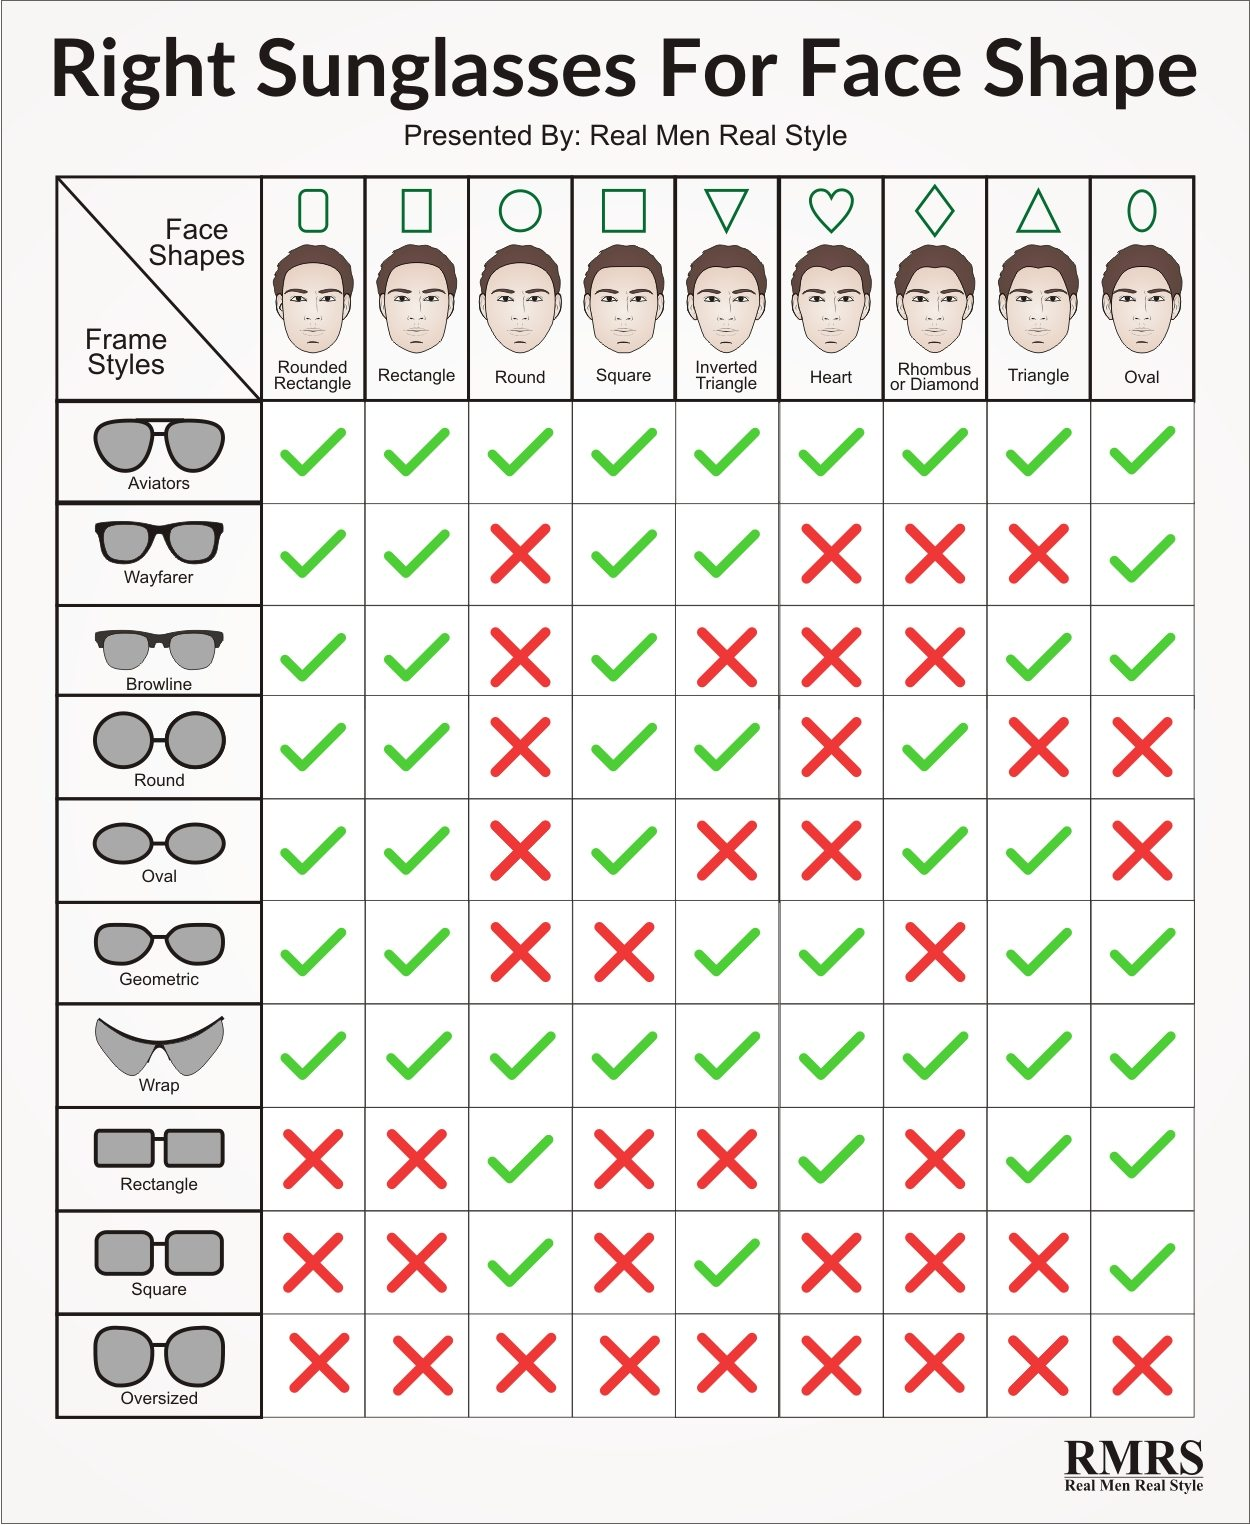 b6b00cabbe The Right Sunglasses For Your Face Shape Infographic